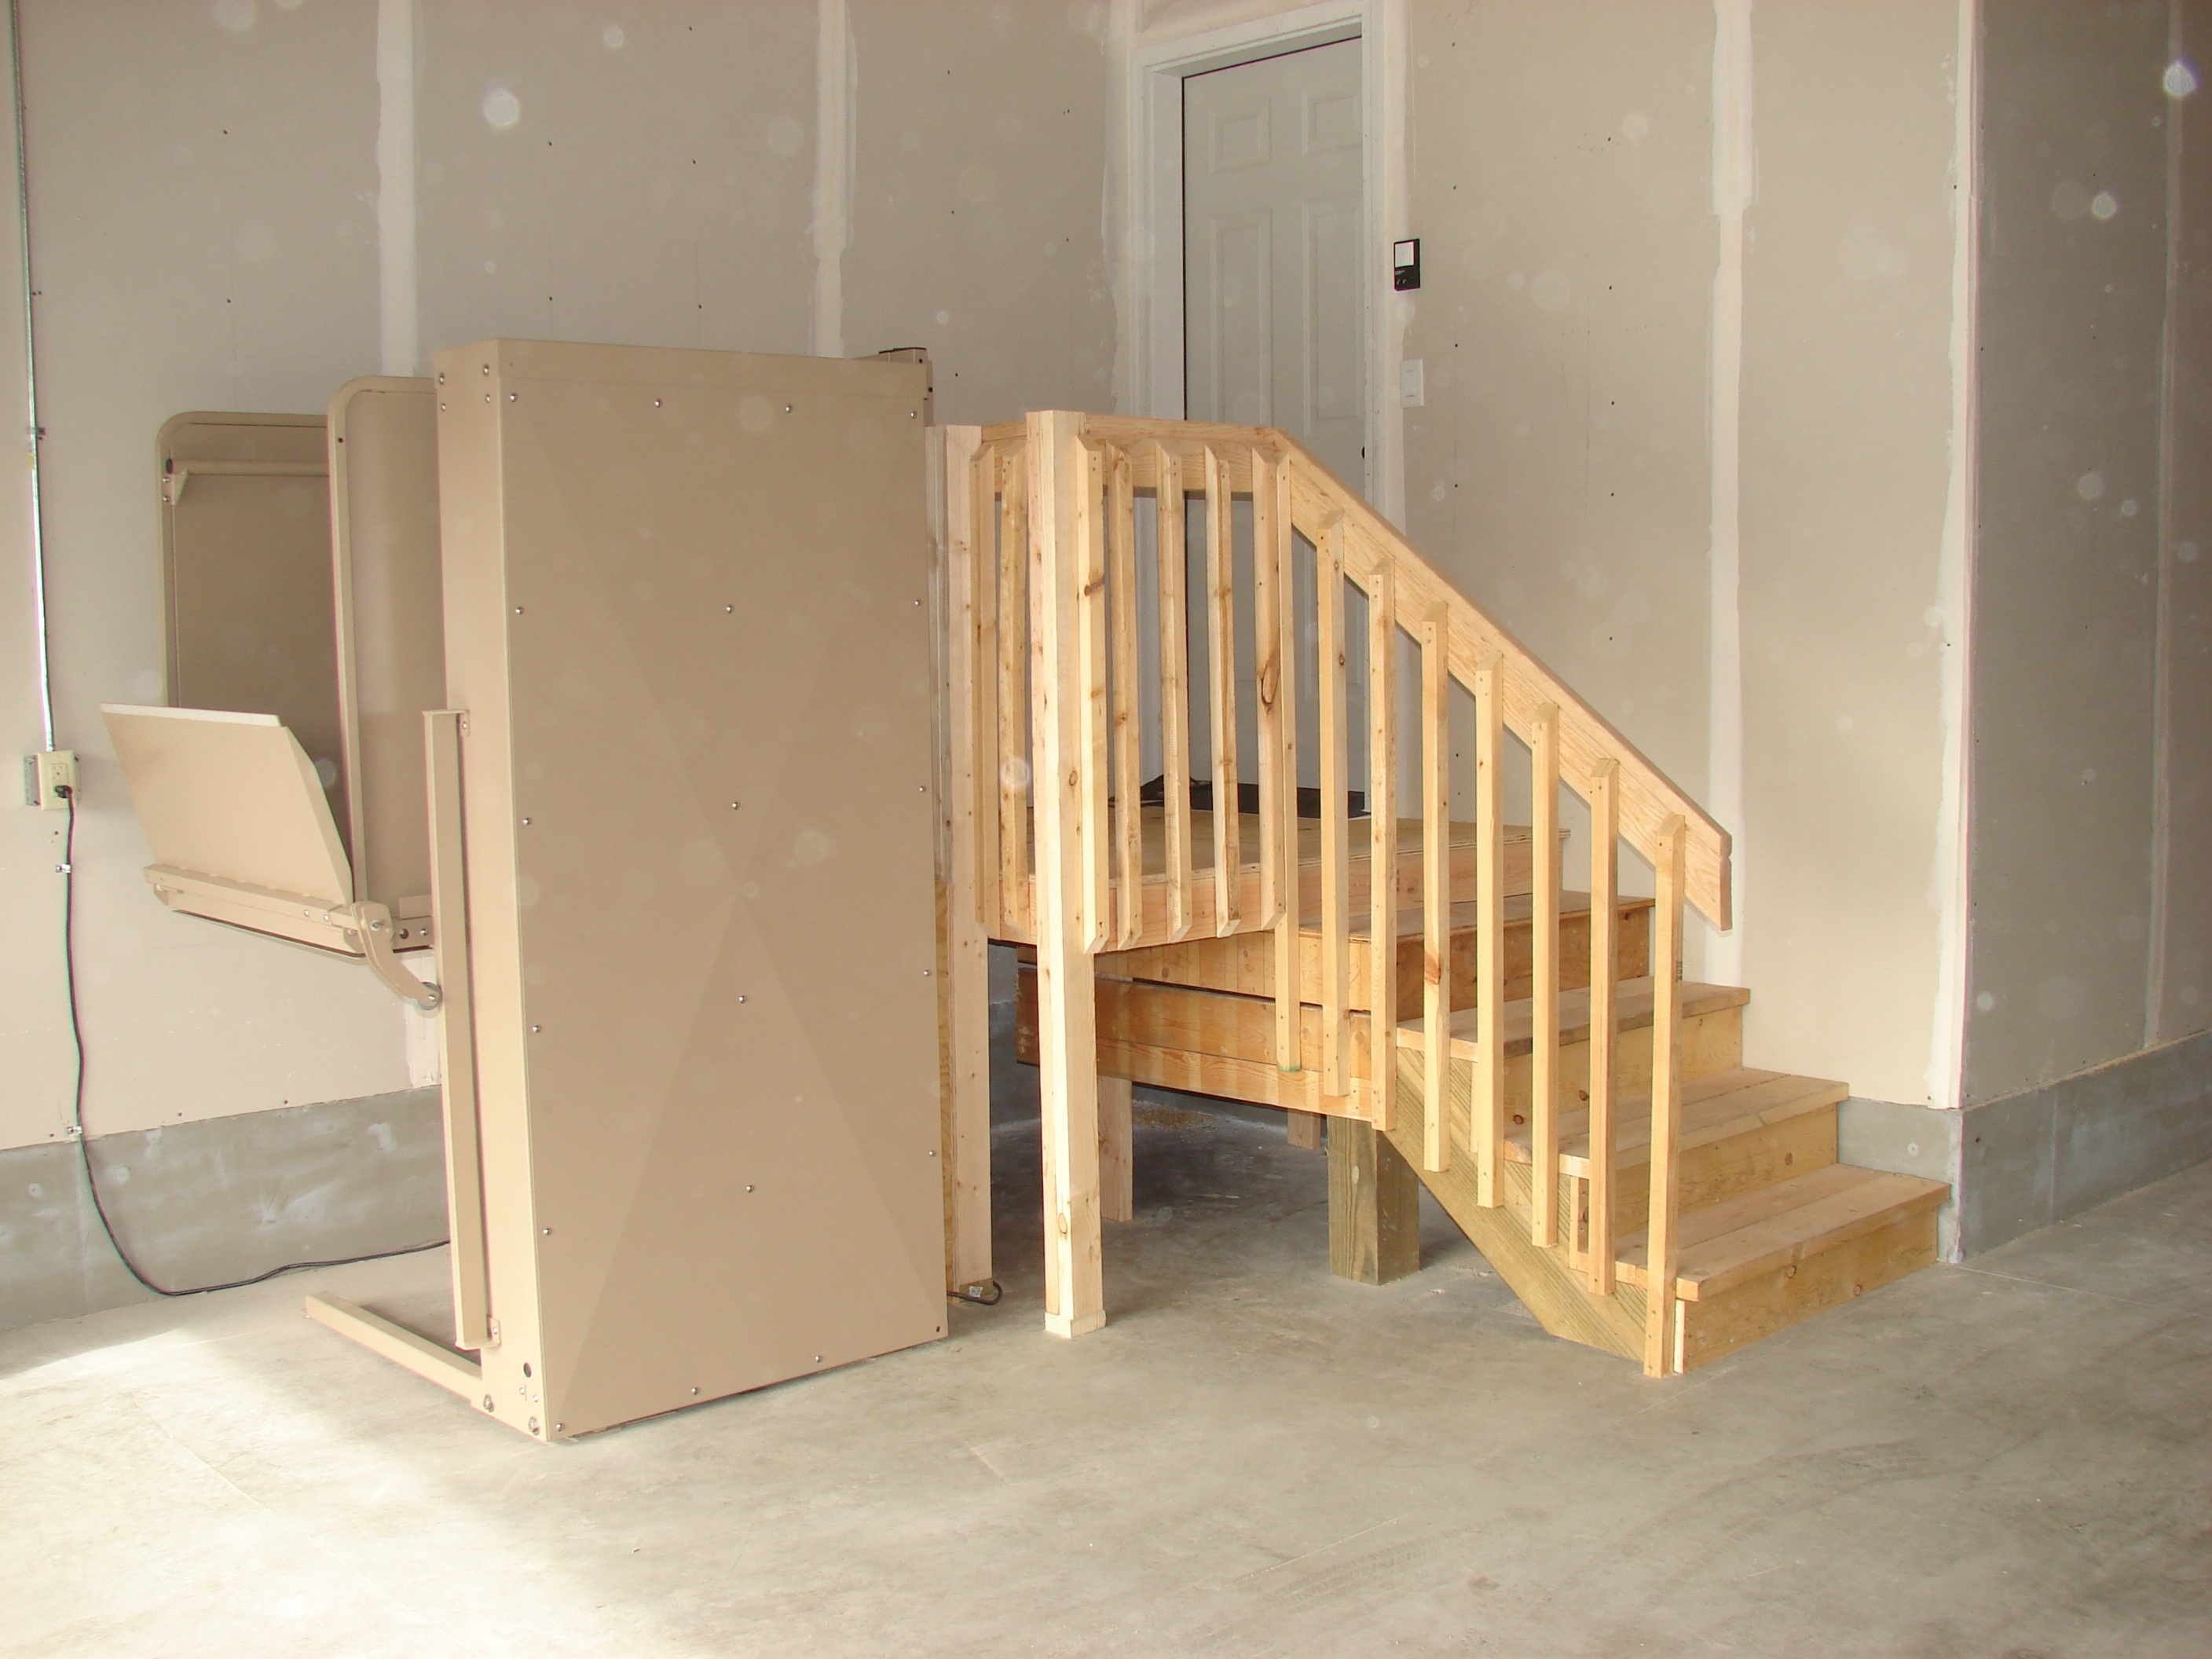 Wheelchair Ramp or Vertical Platform Lift: Which is Right ... on home elevator door, home elevator steps, home elevator lights, home elevator winch, home elevator garage, home elevator lift, home elevator shaft, home elevator rail,